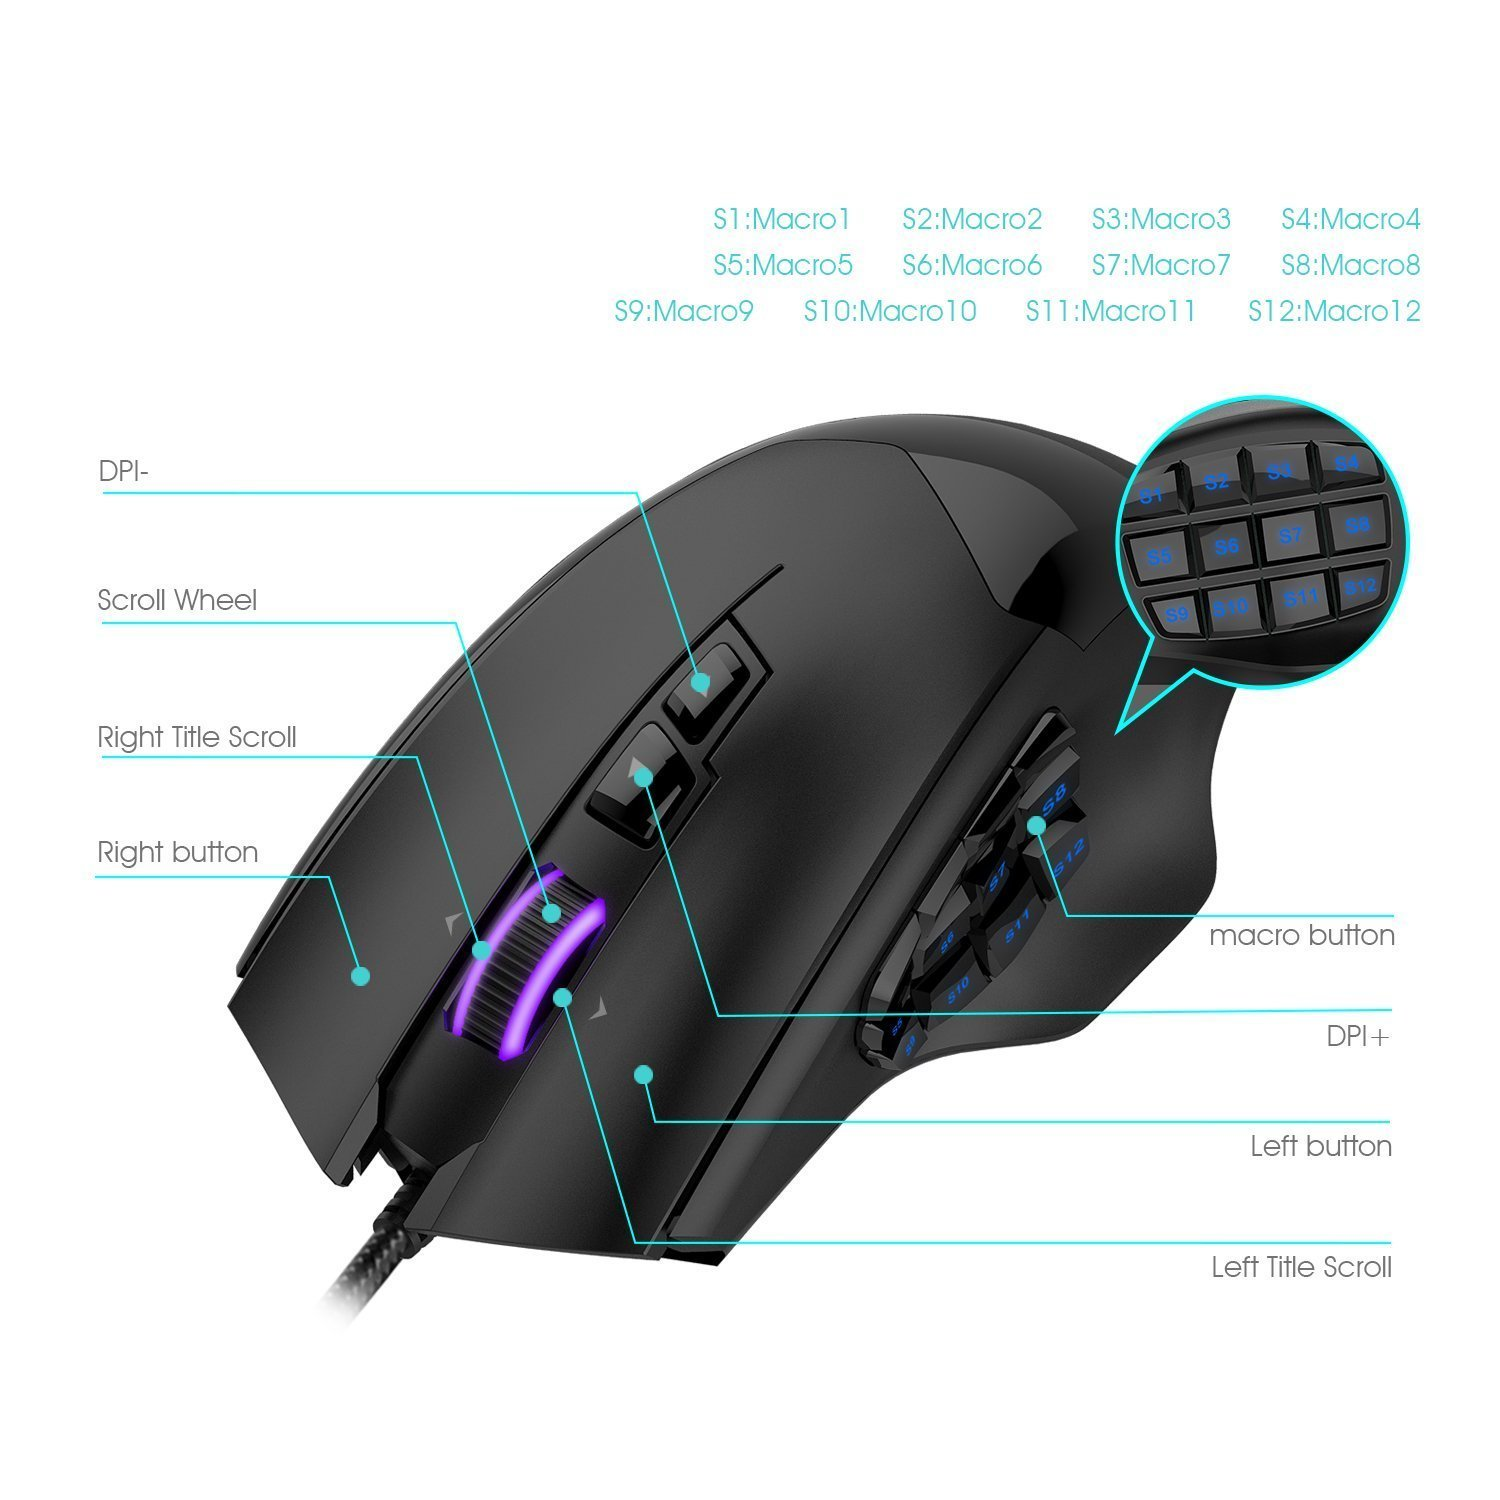 HAVIT 12000 DPI 19 Programmable Buttons Optical Sensor Pixart PMW 3360 Optical MMO Gaming Mouse - Black (HV-MS735)